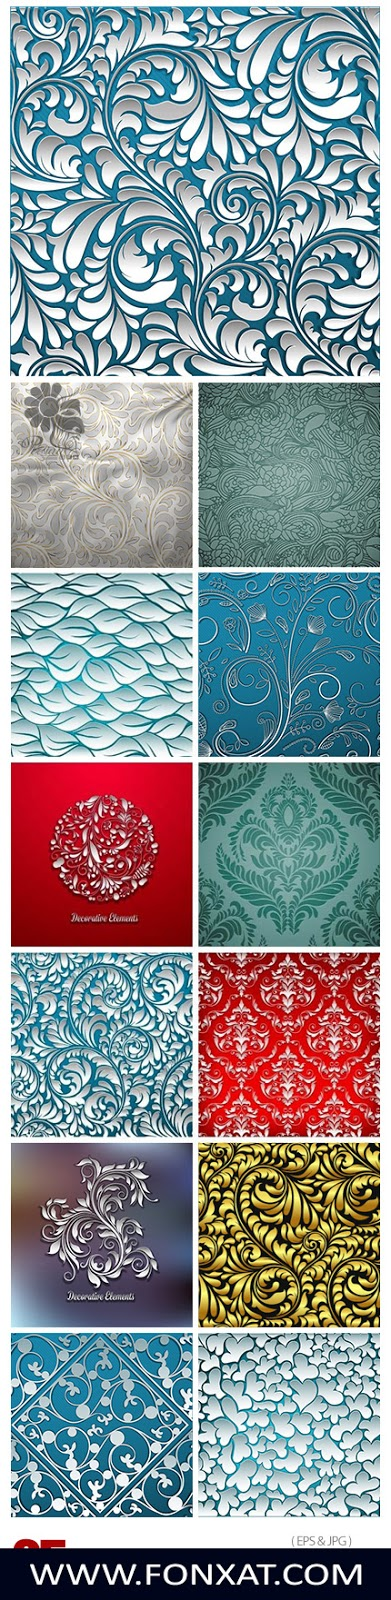 Download Images Vector Pattern Designer